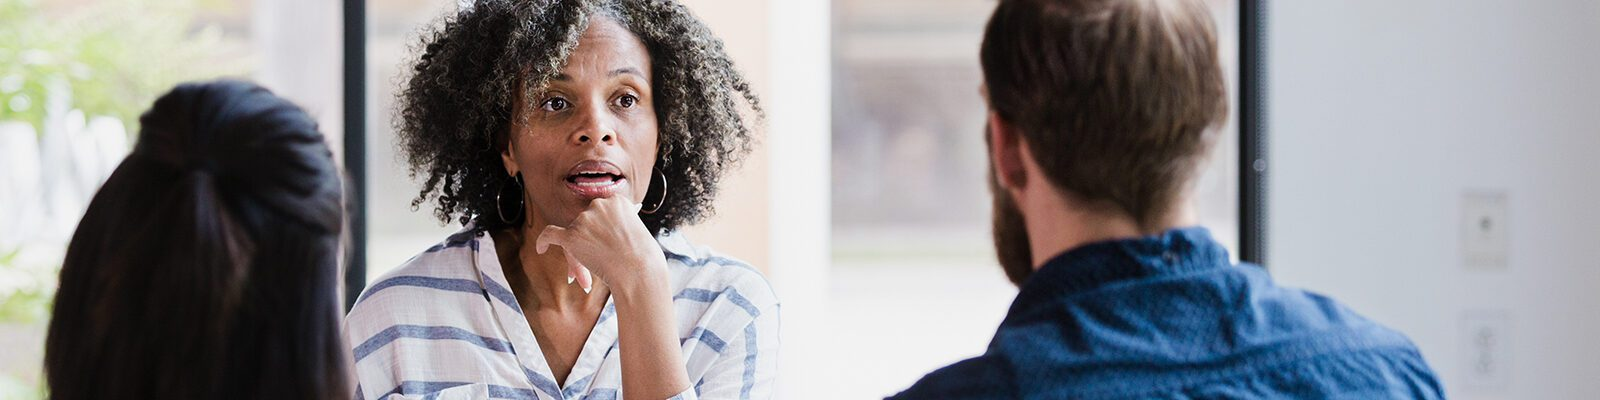 Two people talking during counseling